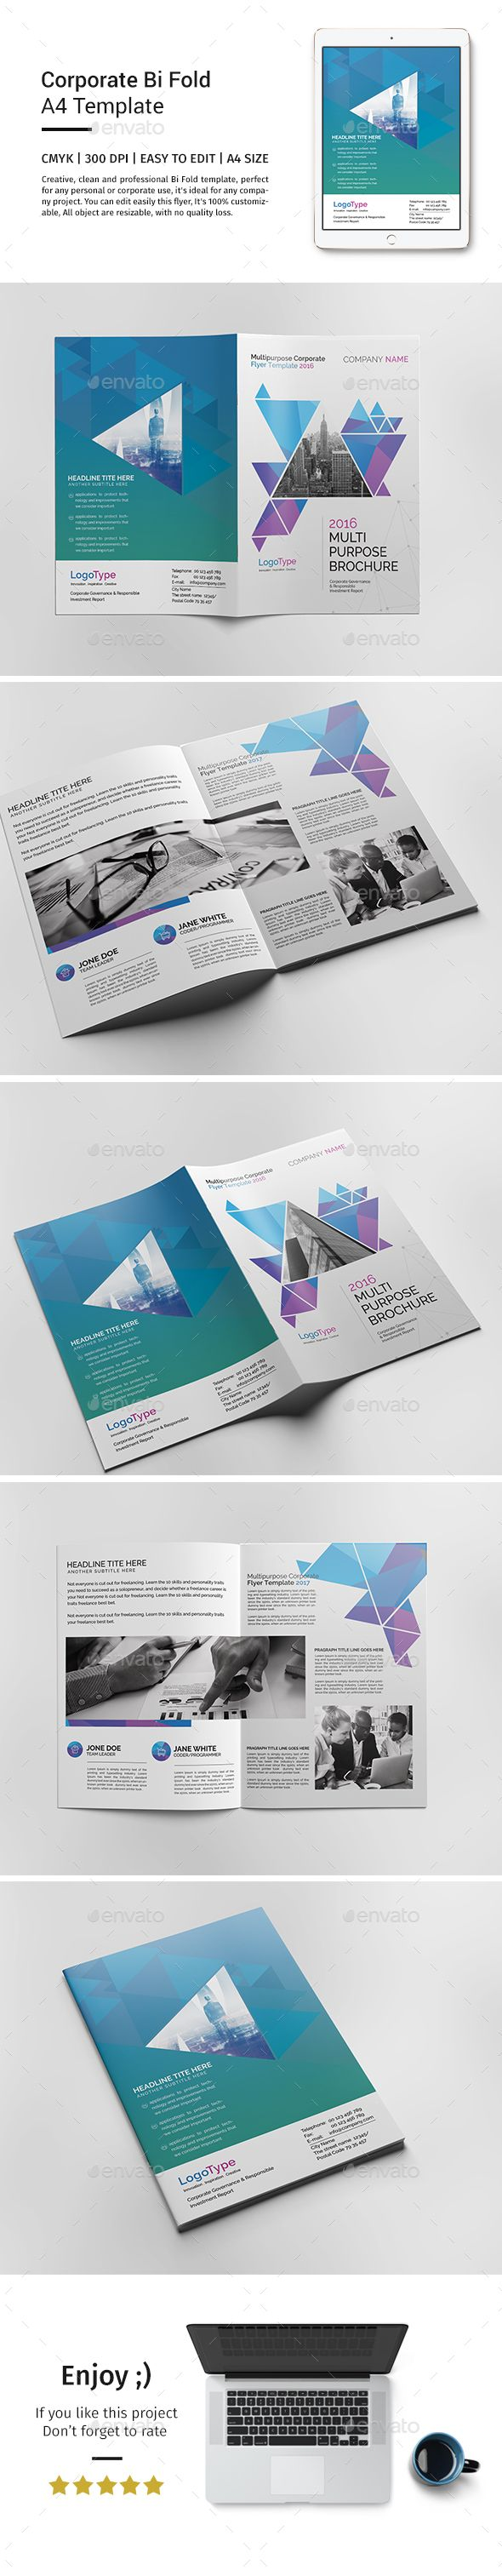 Corporate Bi-fold Brochure Template - Catalogs Brochures | Download http://graphicriver.net/item/corporate-bifold-brochure-template/15519317?ref=sinzo